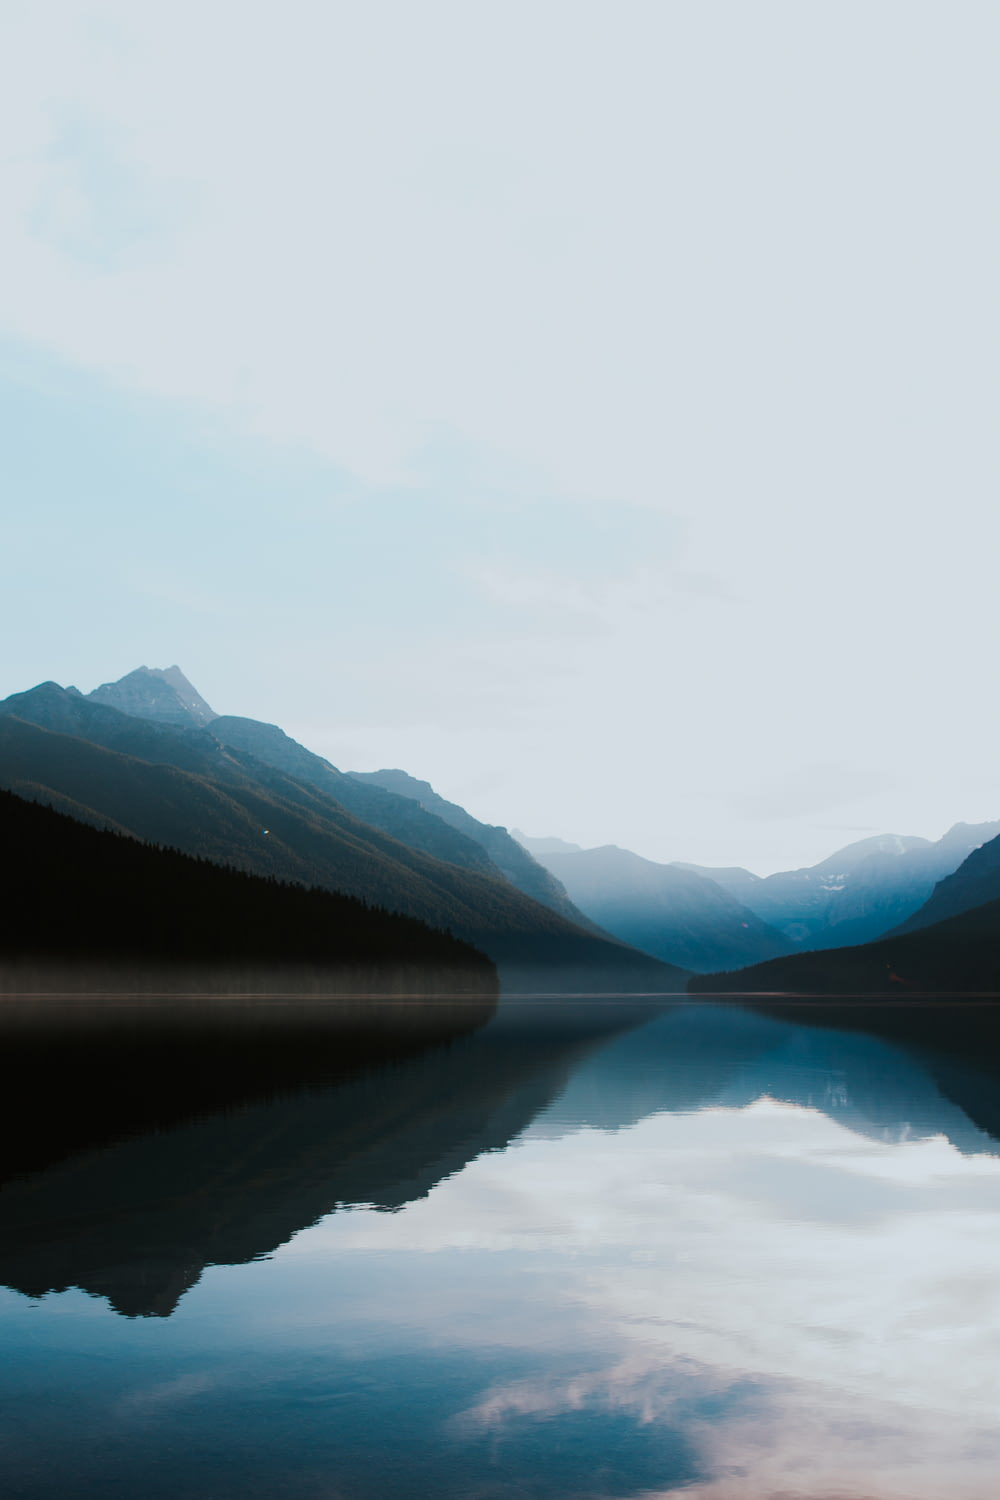 mountains surrounded by body of water